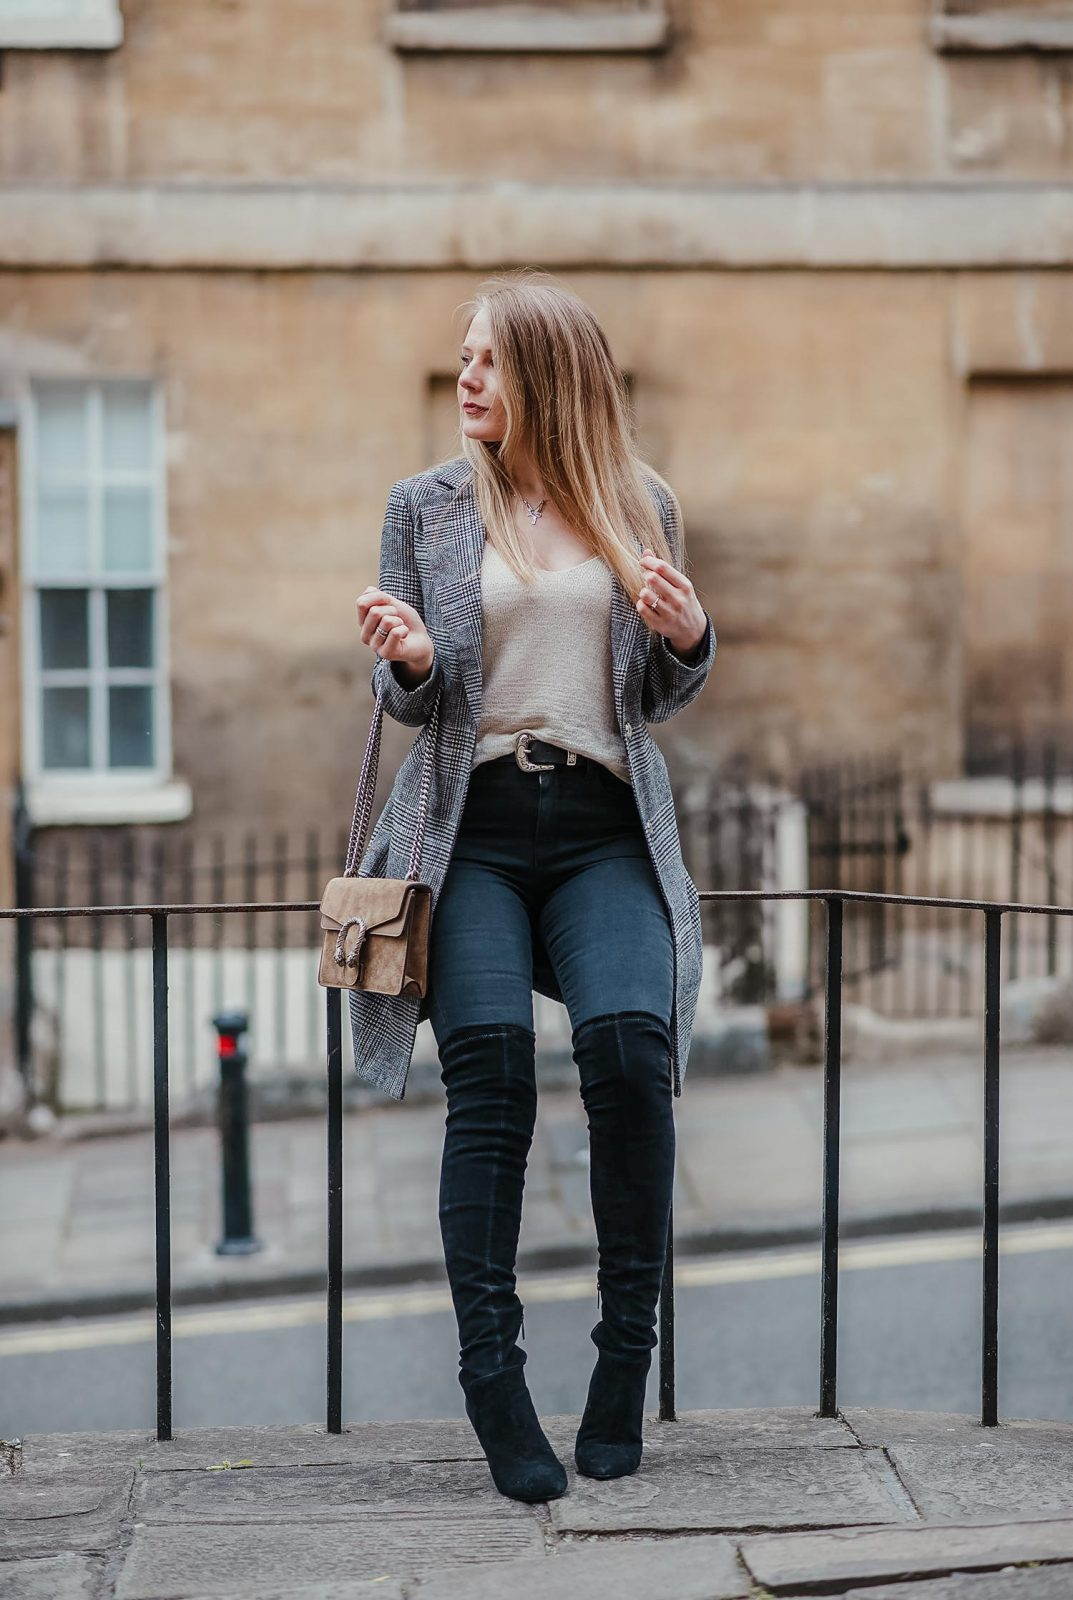 The Grey Checked Blazer With Black Boots